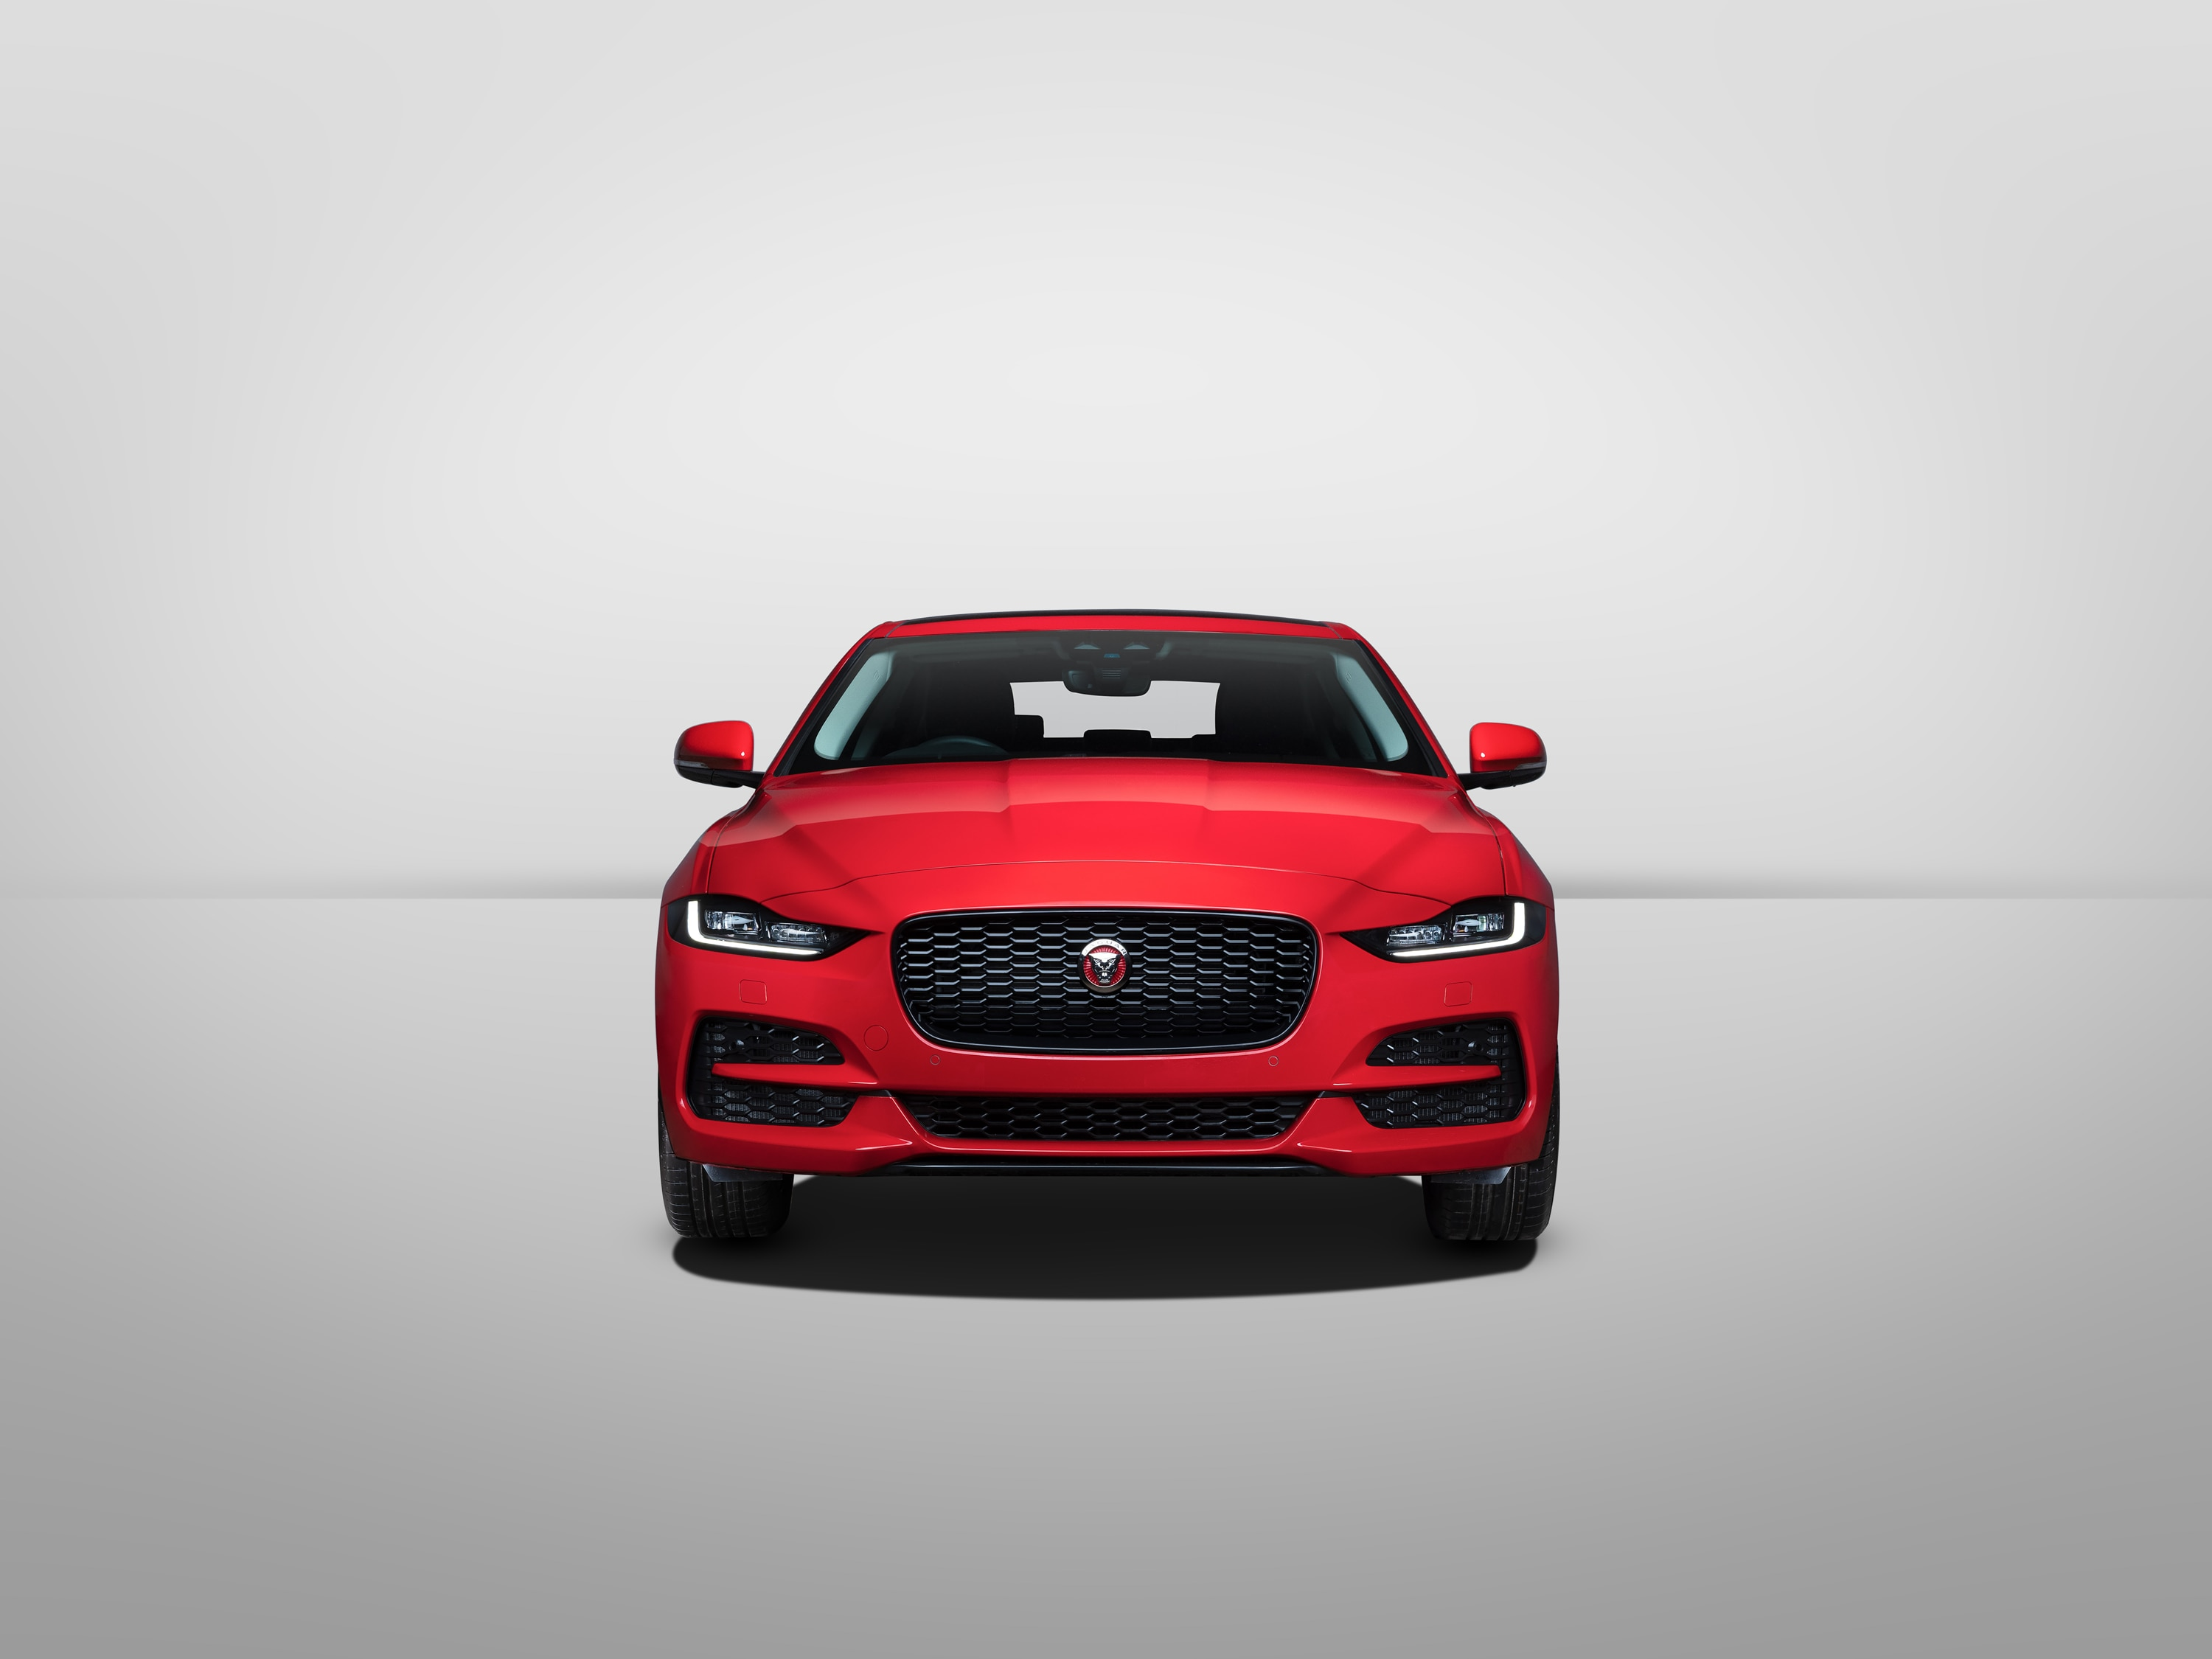 The new XE gets a larger front grille, sleeker LED headlights and a sculpted bonnet which accentuates its athletic appeal.